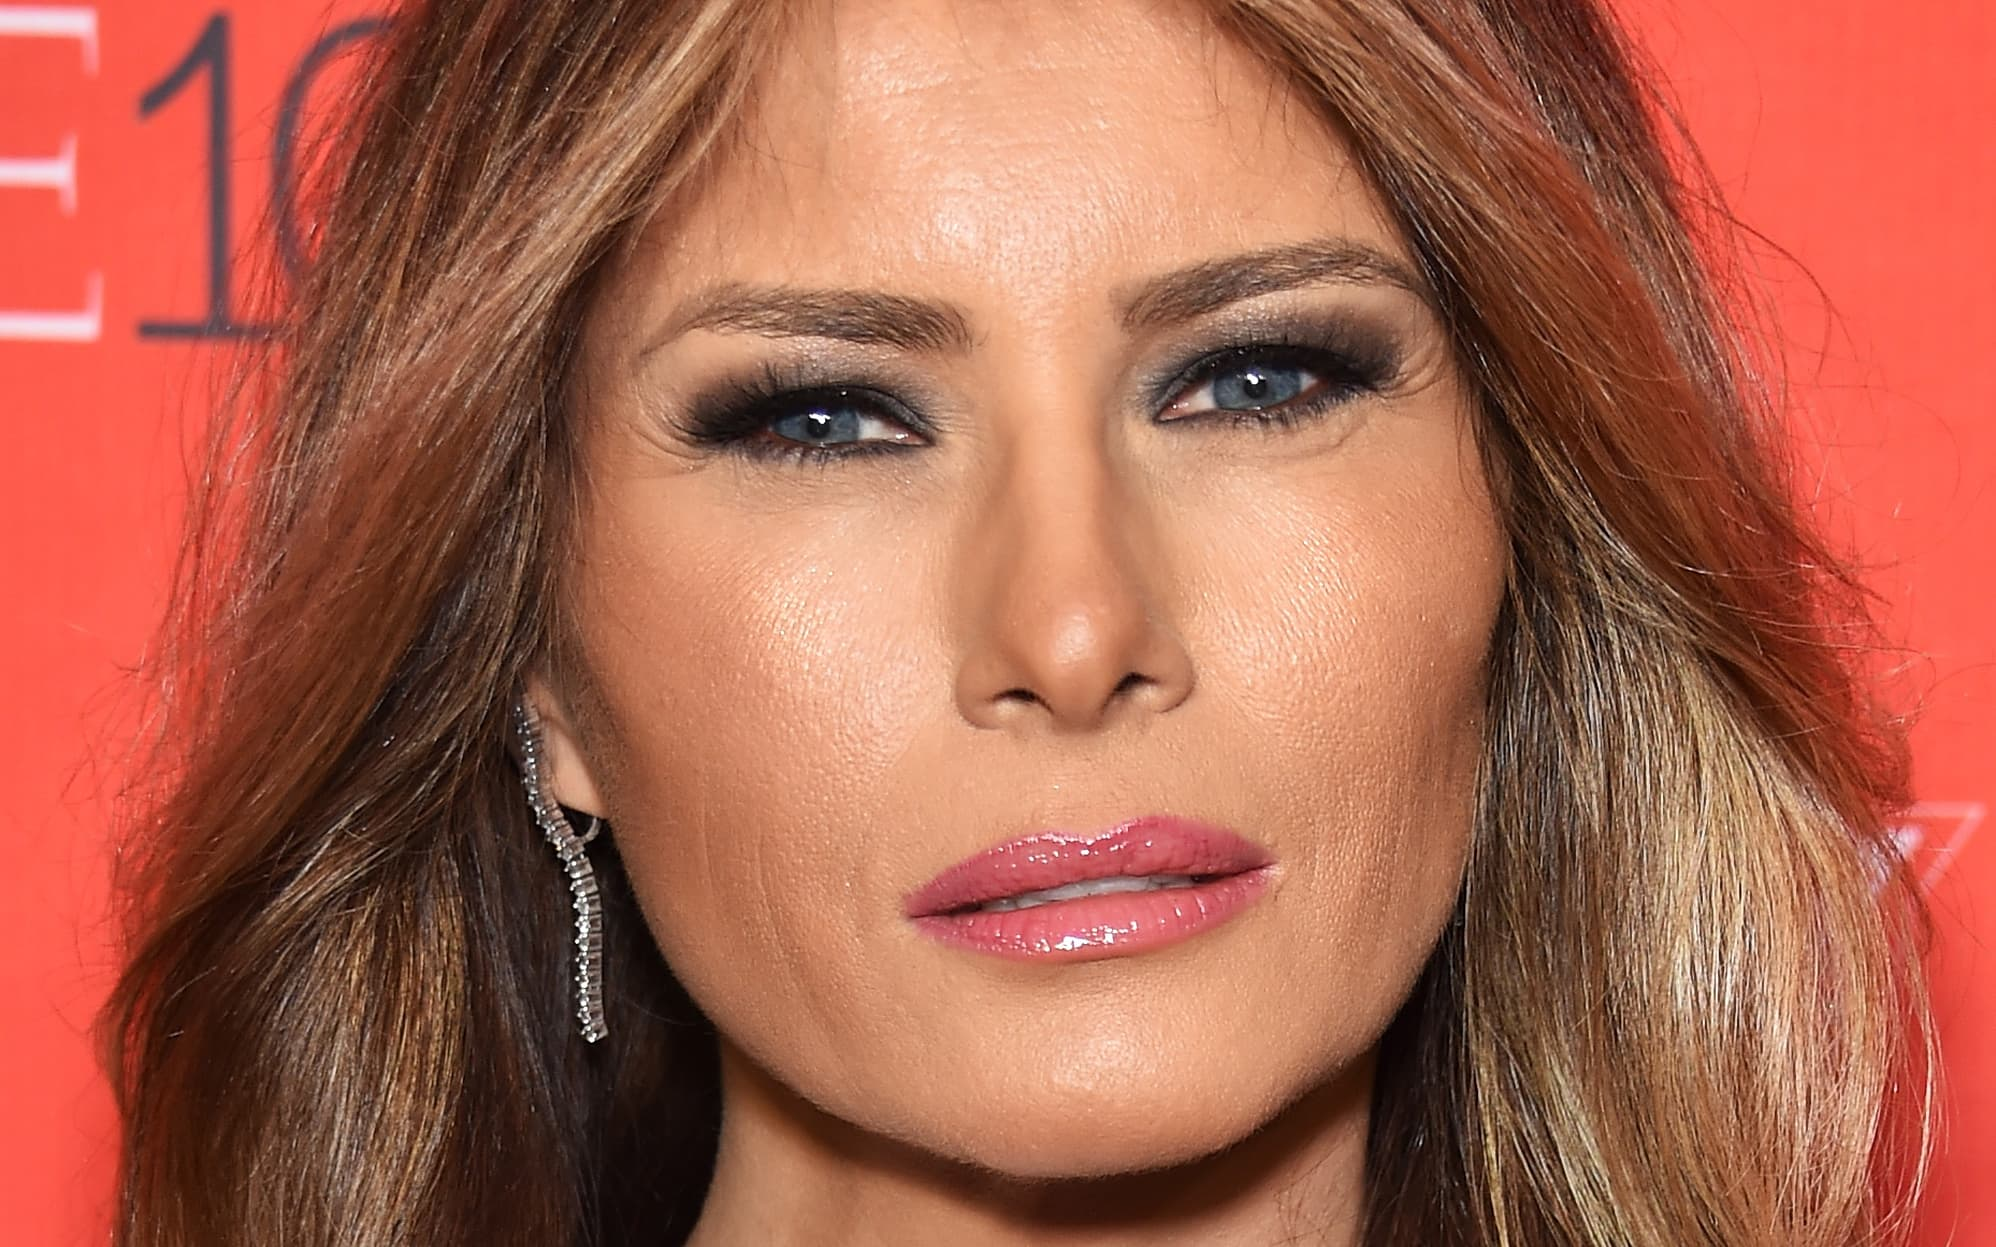 Melania Trump Plastic Surgery Before photo - 1